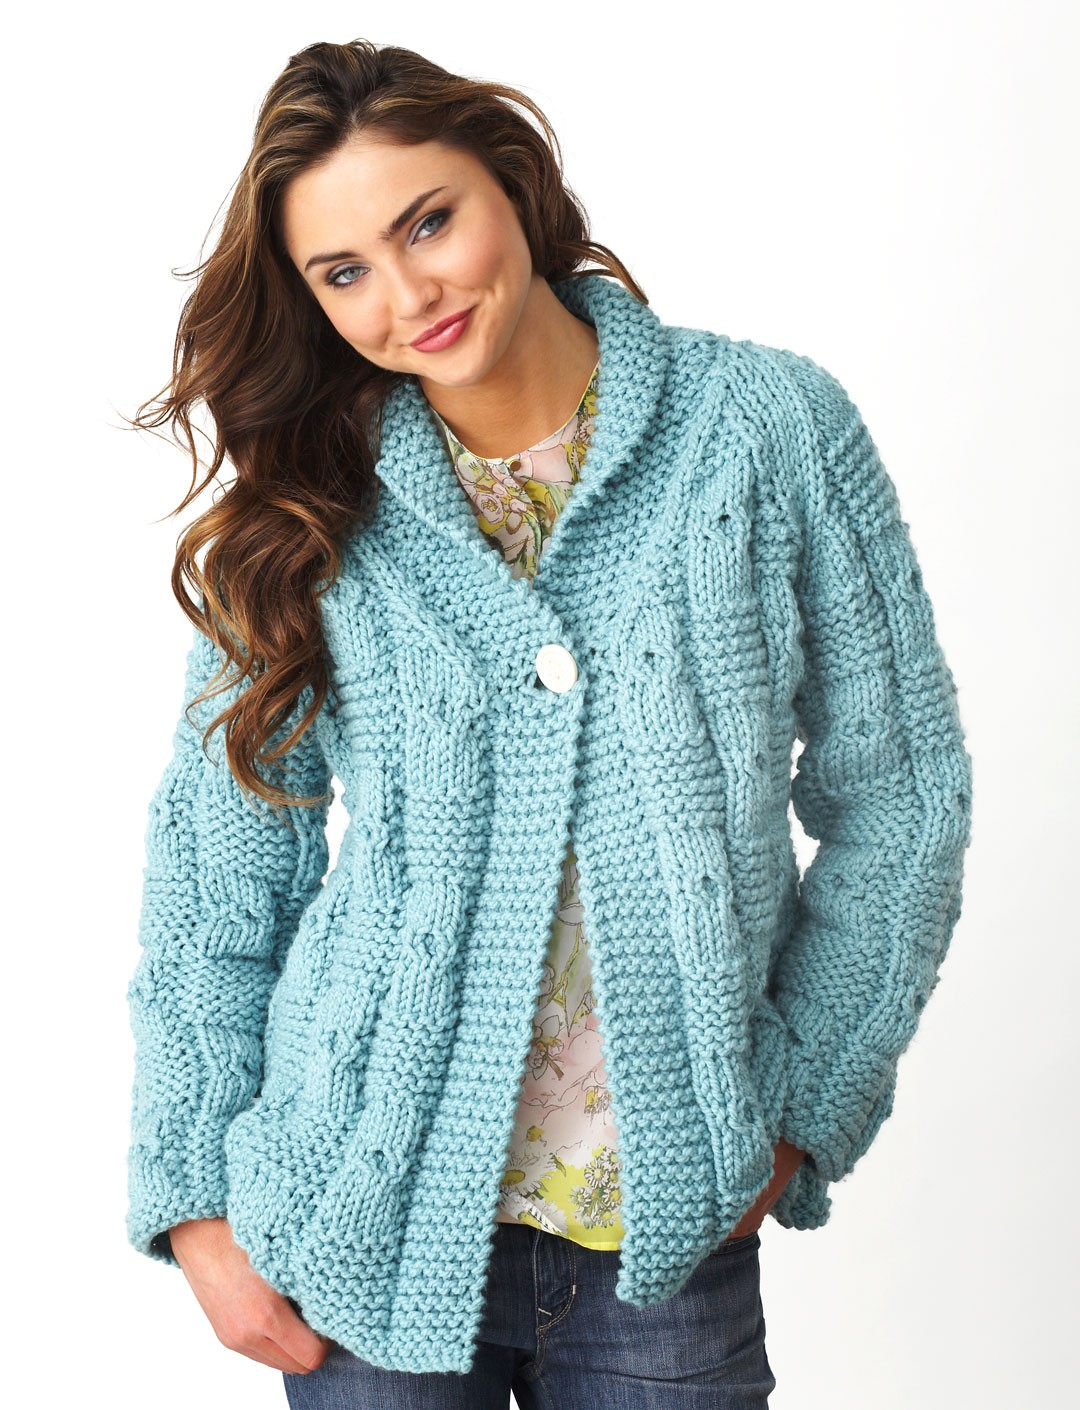 Free Knitting Pattern For Cardigan : Bernat Textured Checks Cardigan, Knit Pattern Yarnspirations